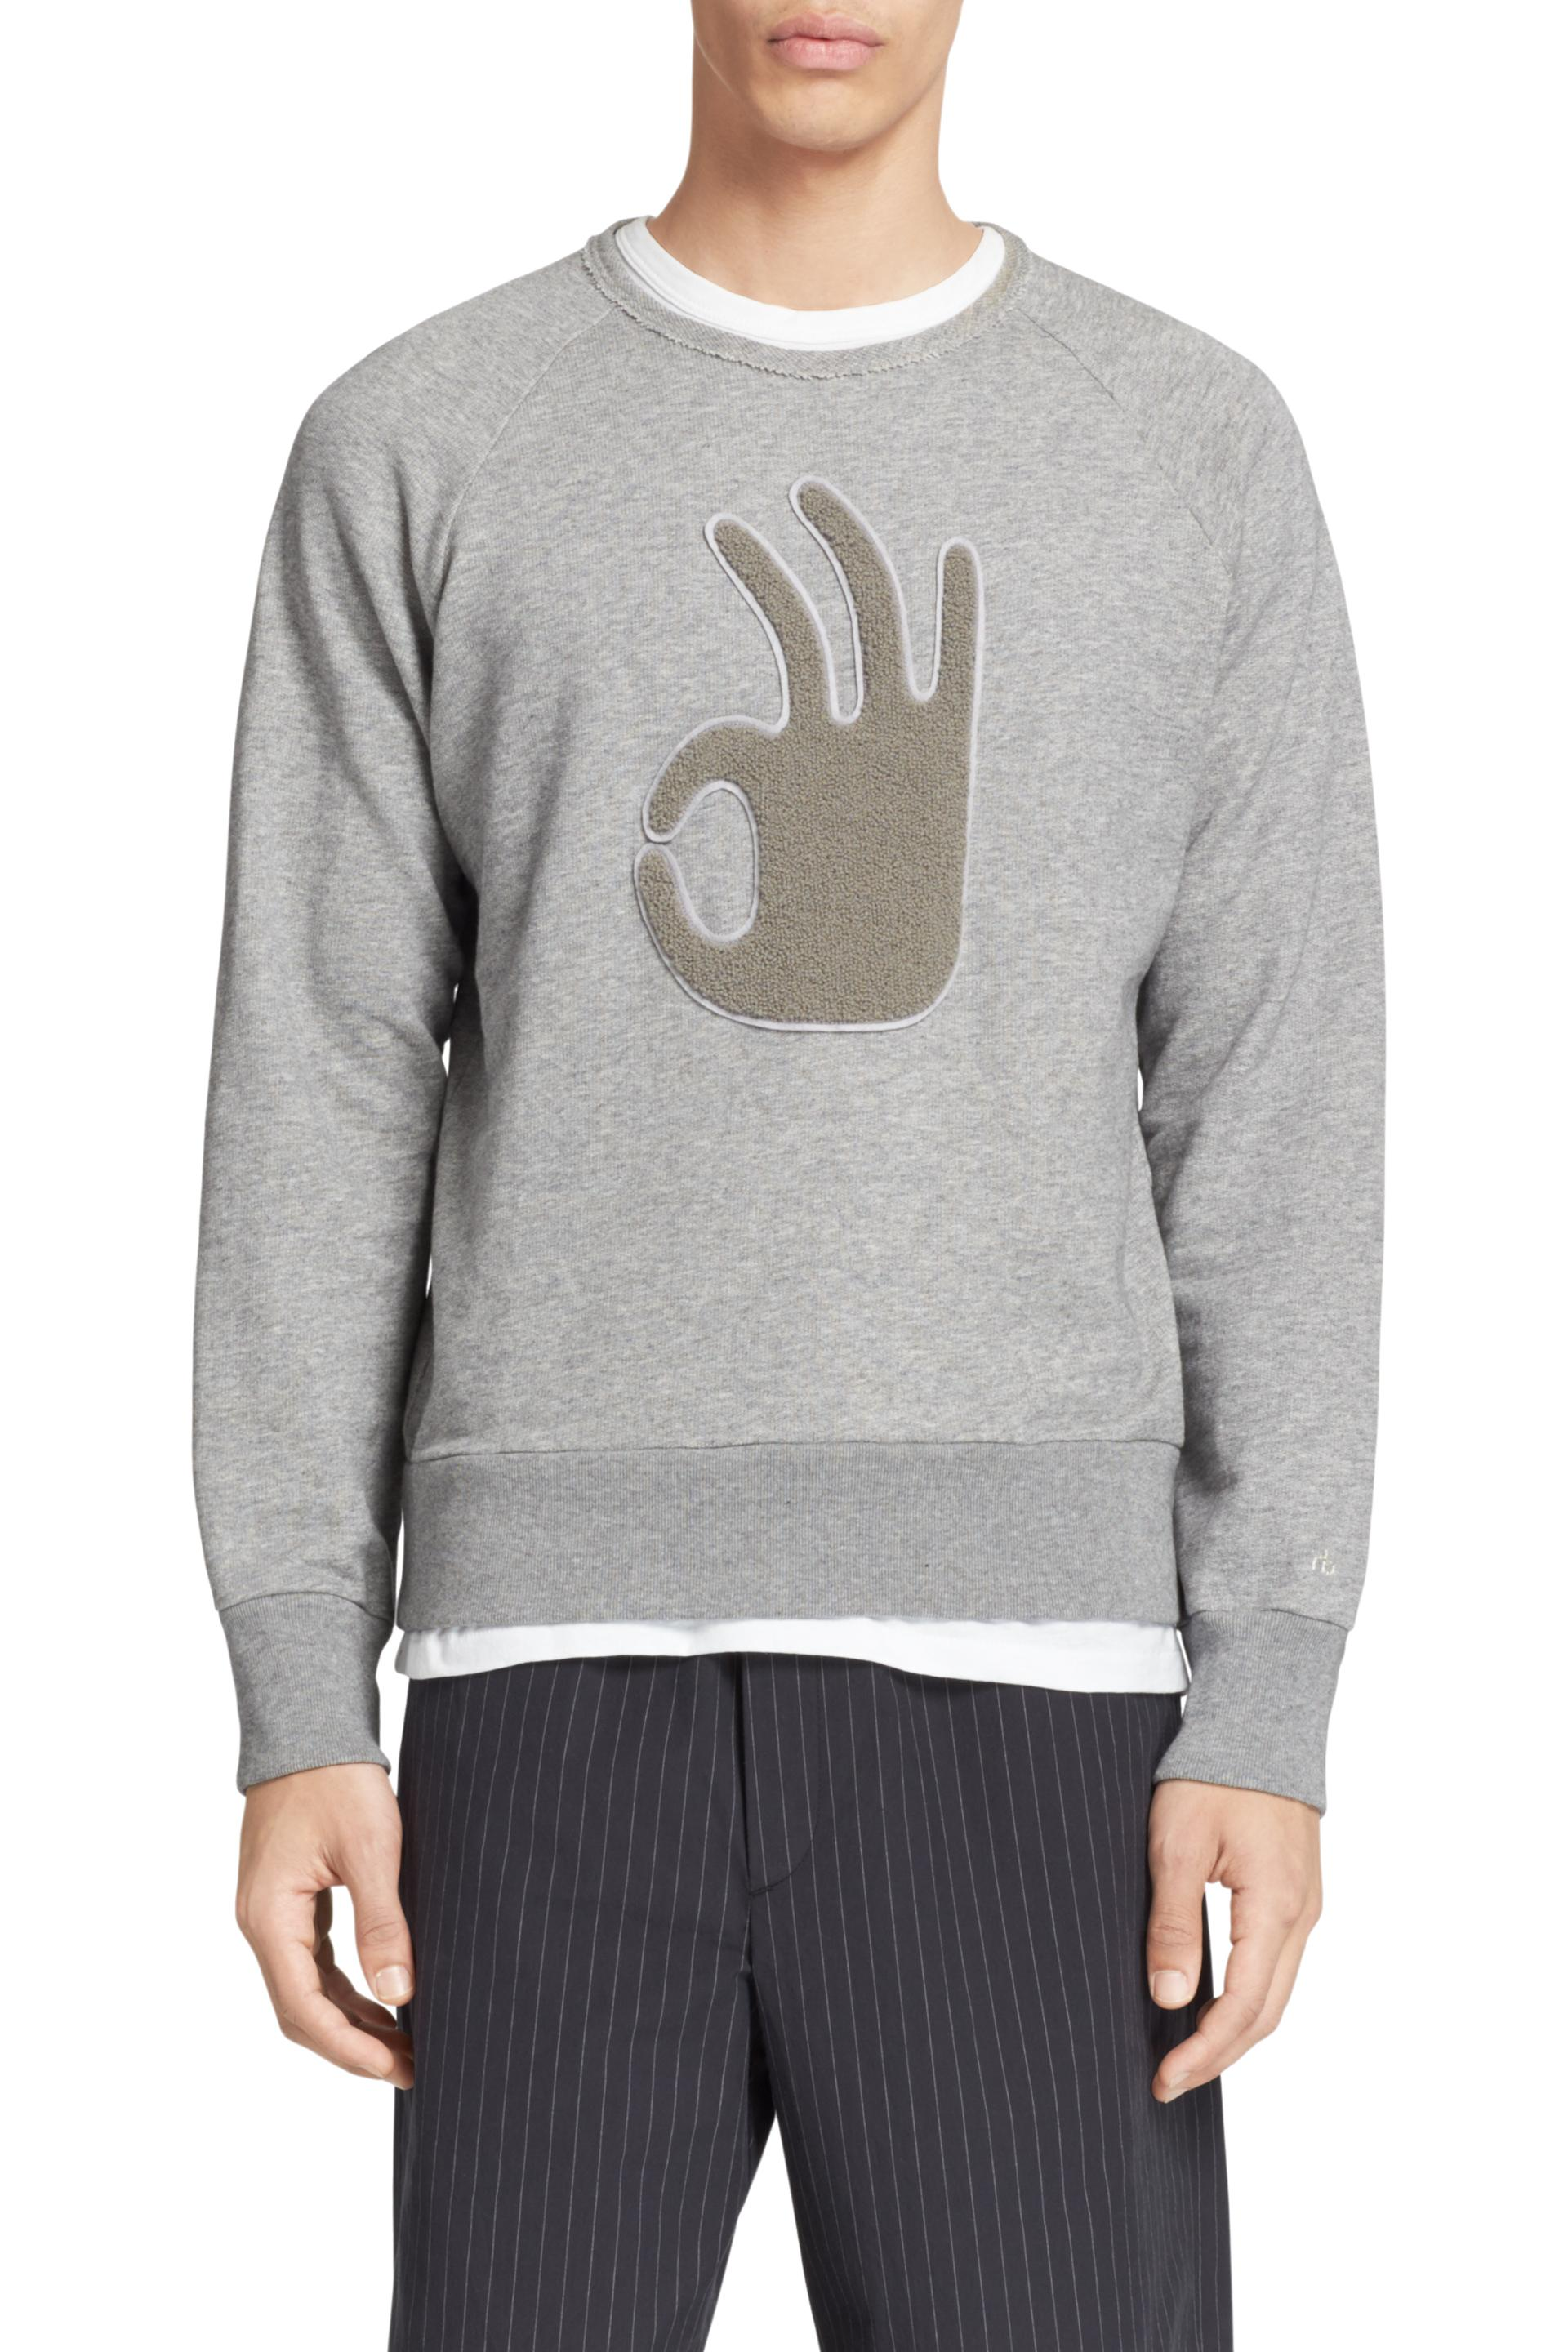 Okay Sweatshirt Men Tops Rag Bone